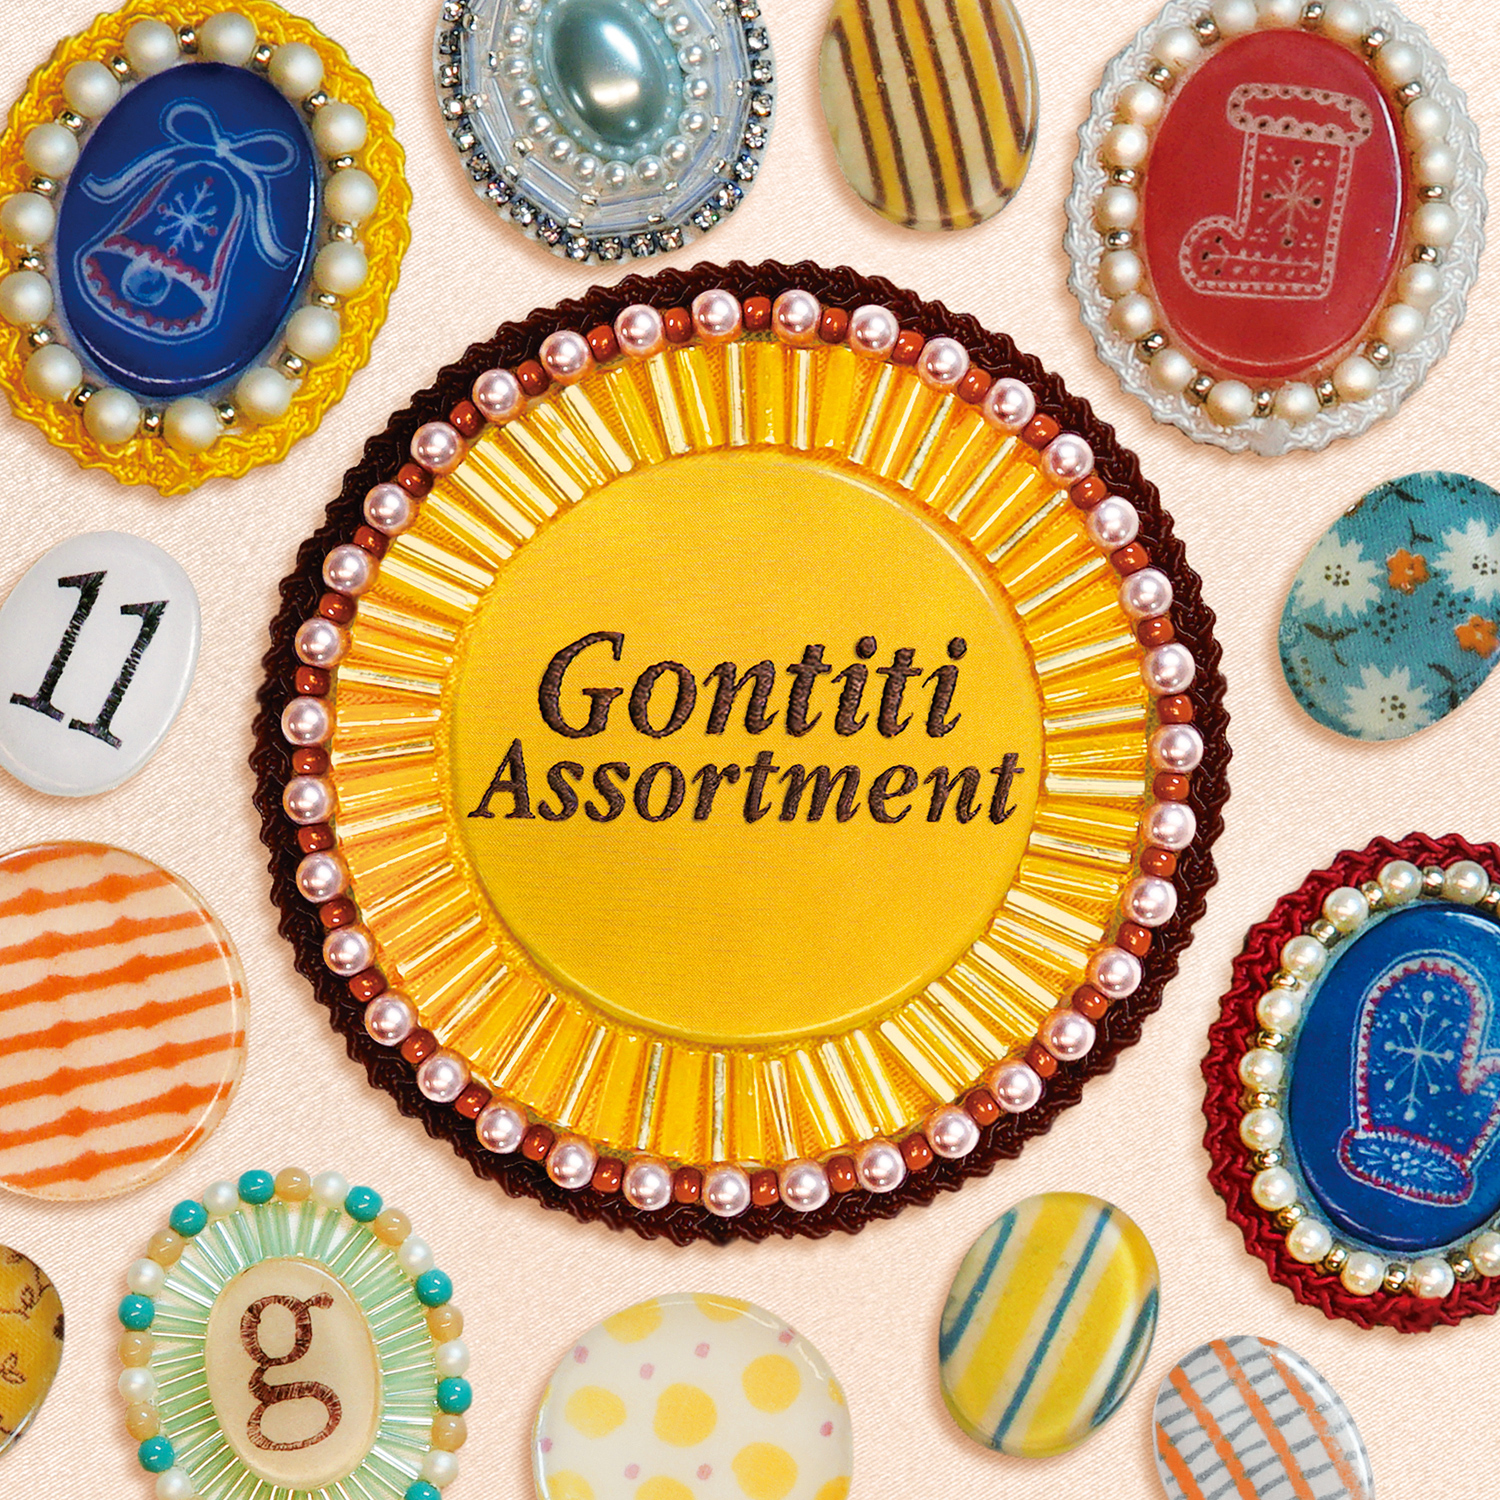 GONTITI New Album「Assortment」